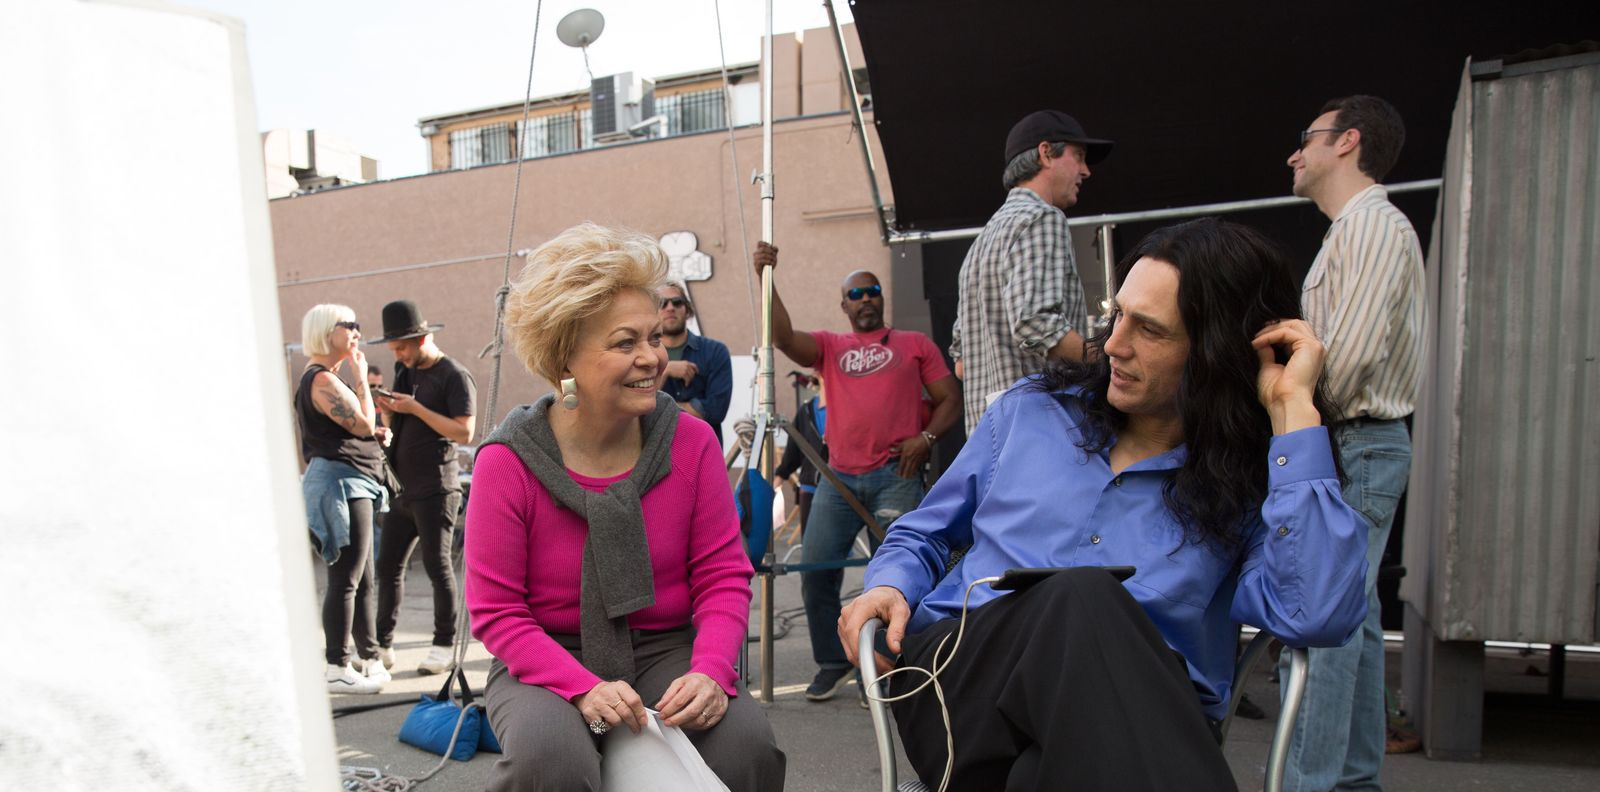 Jackie Weaver + James Franco behind the scenes on The Disaster Artist